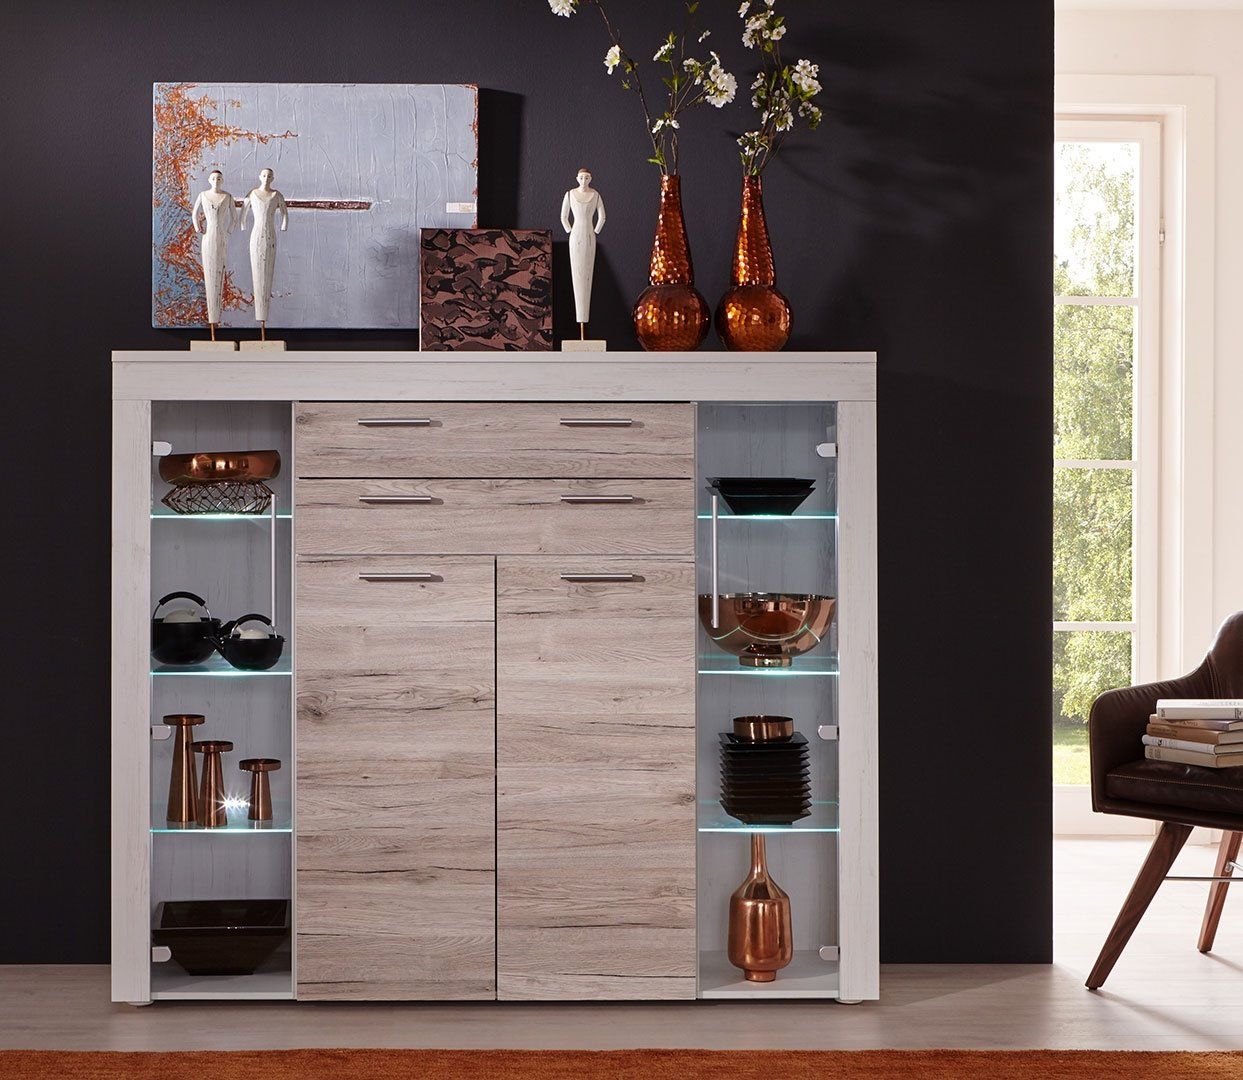 highboard boom eiche sand pinie wei kommode sideboard schrank wohnzimmer holz m bel wohnen. Black Bedroom Furniture Sets. Home Design Ideas